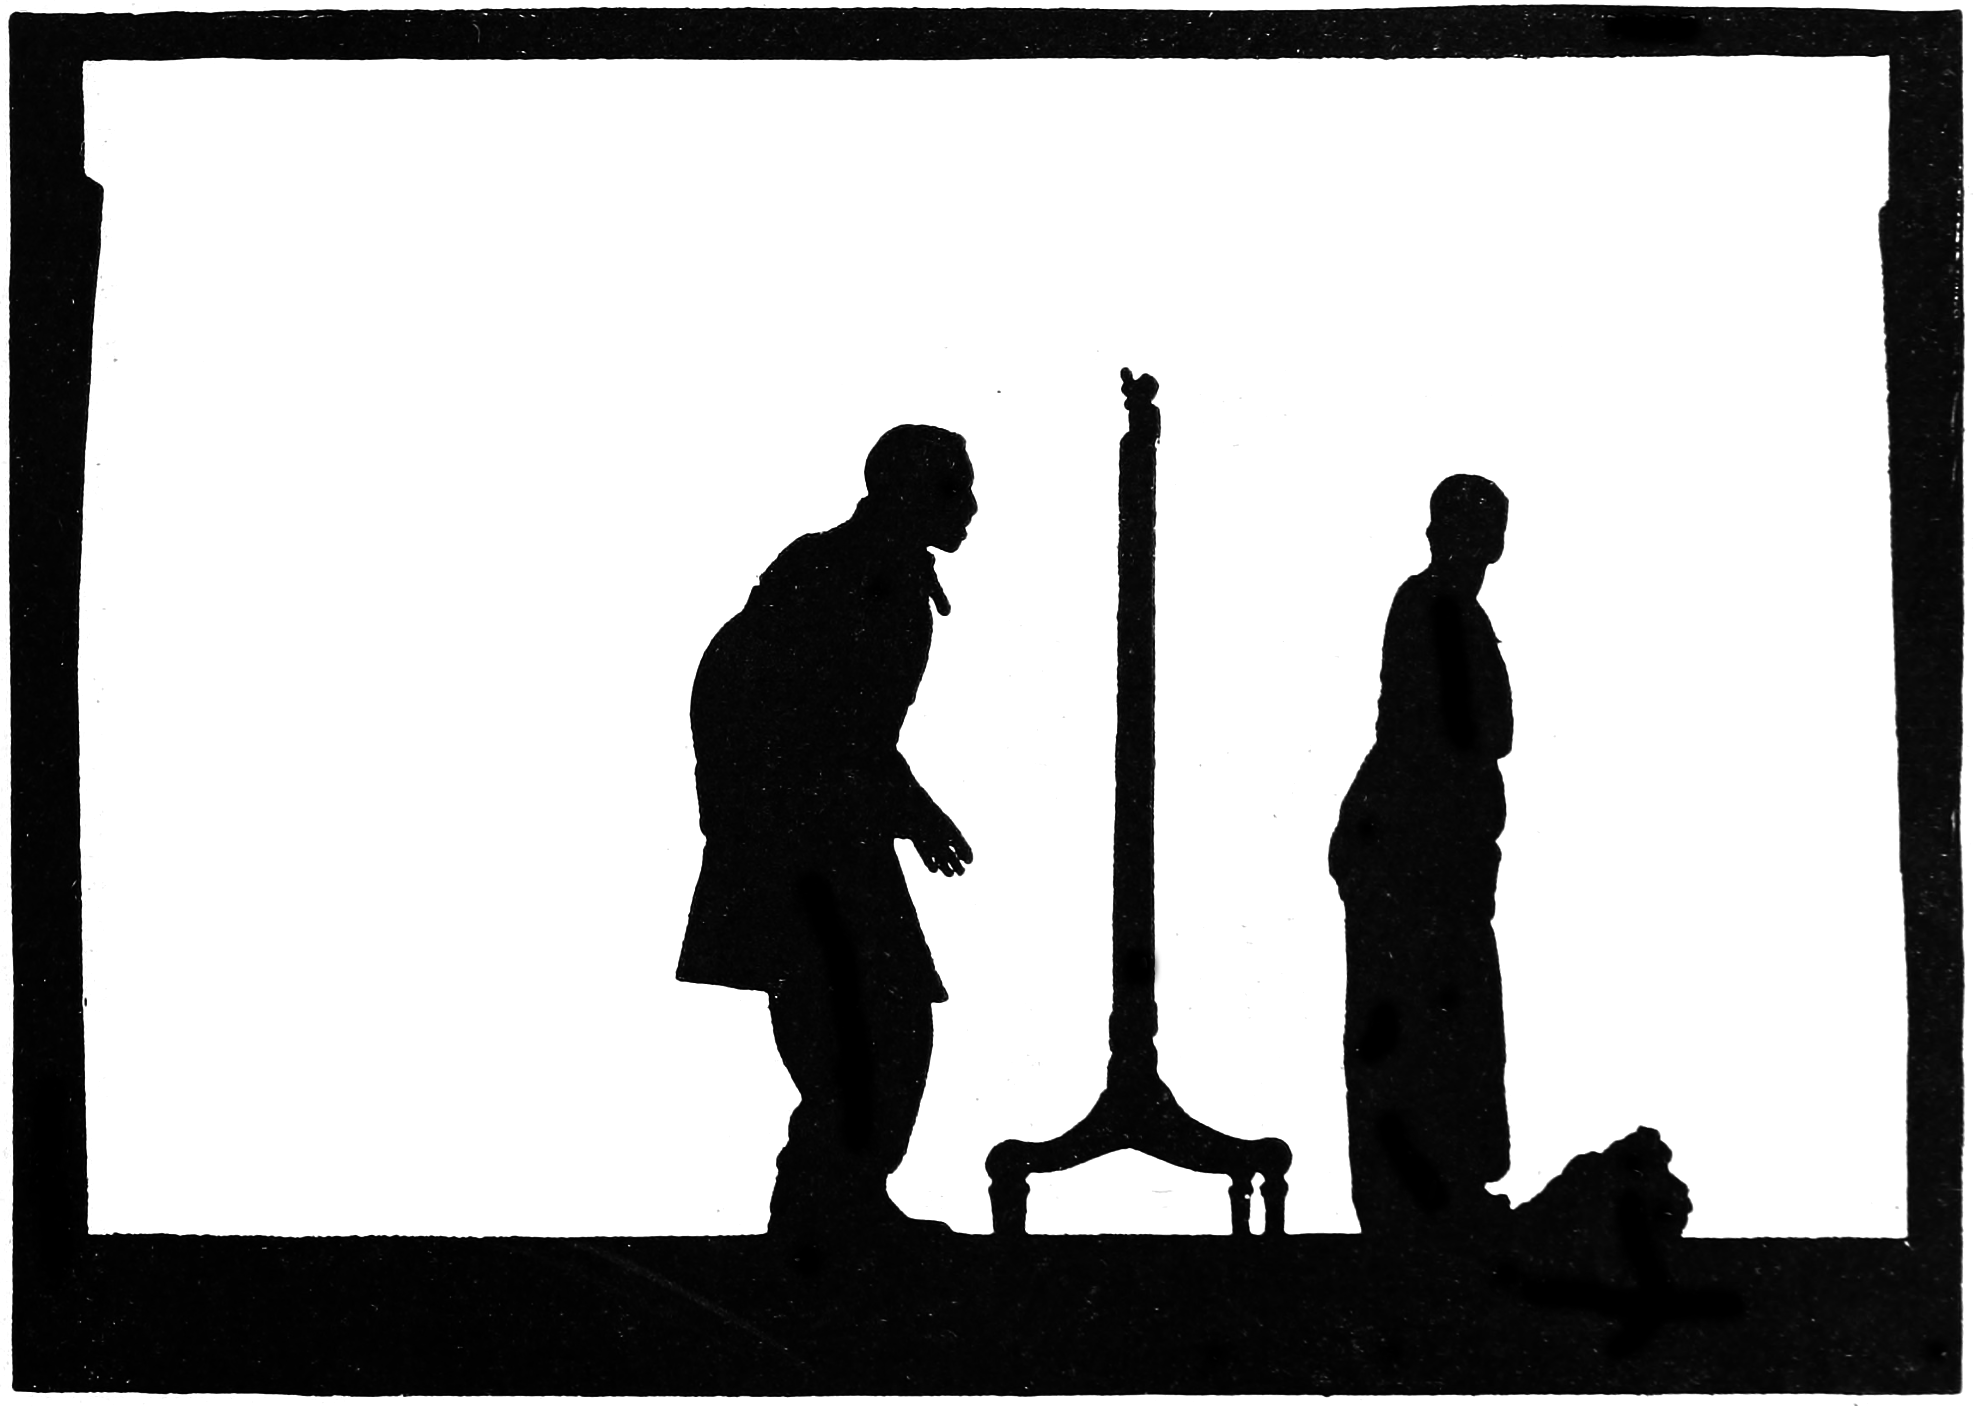 1973x1408 The Animation Silhouette By C. Allan Gilbert